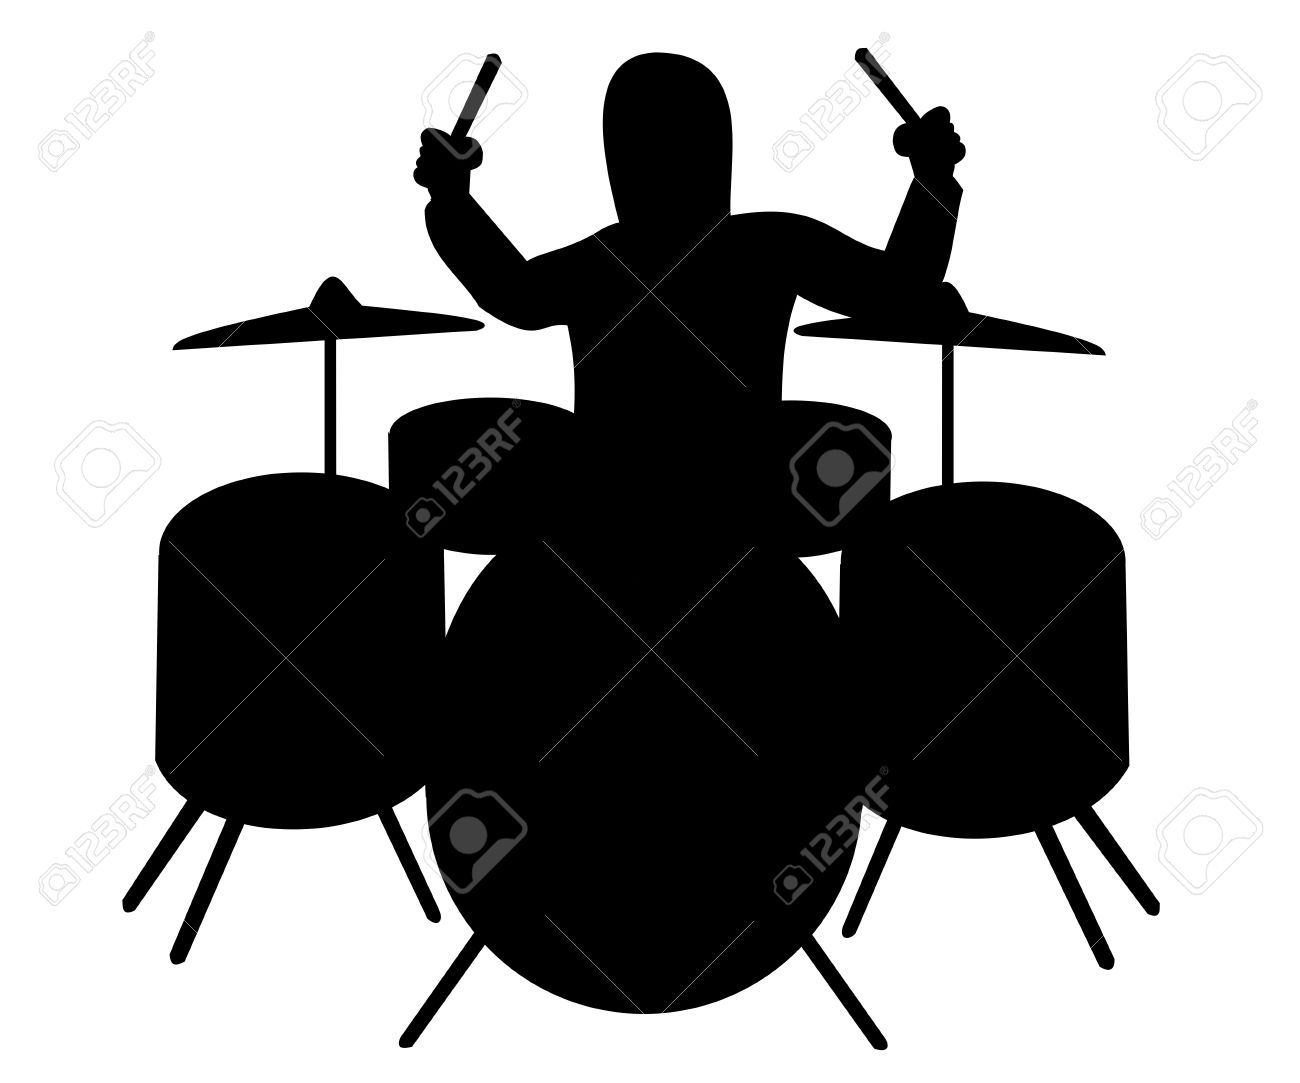 Silhouette of drummer playing White Drum Set Silhouette